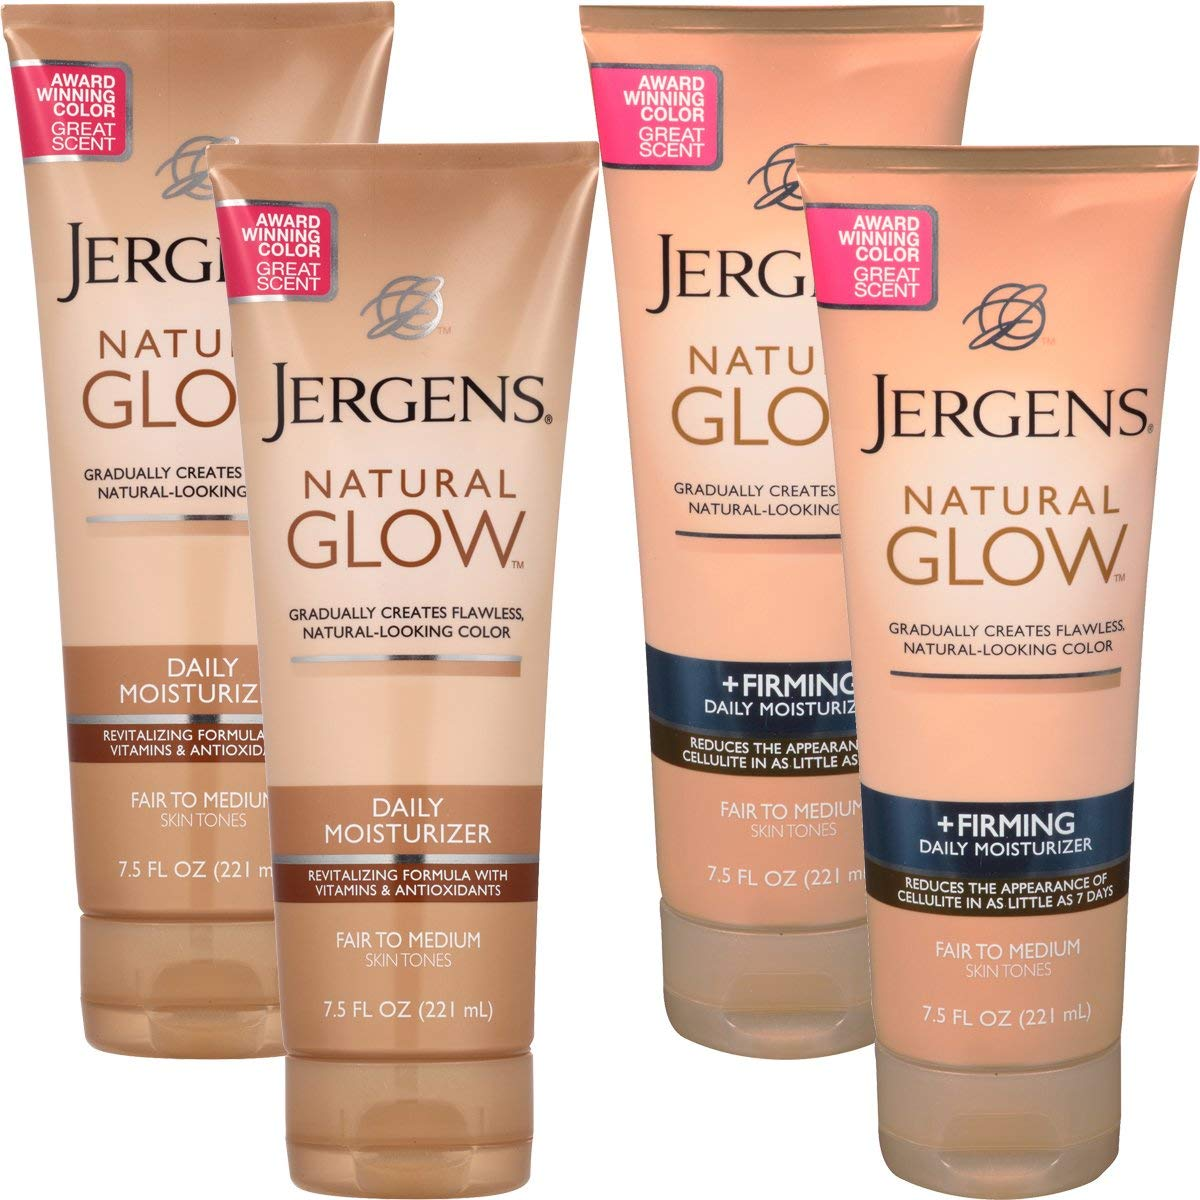 Jergens4 Pack Natural Glow Sunless Tanning Body Lotion Firming Daily Moisturizer